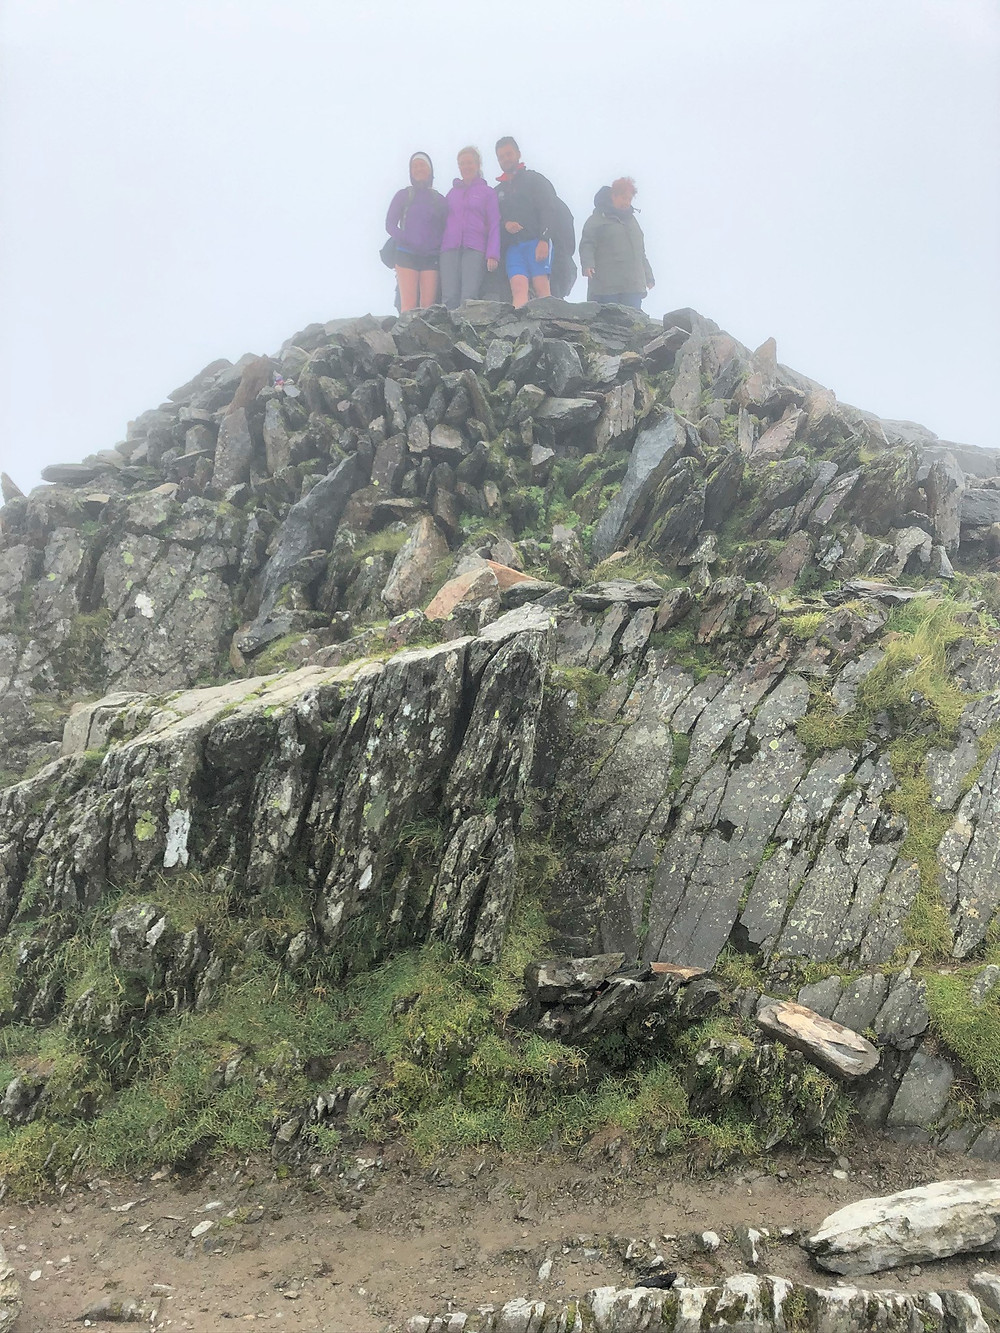 Few people on the cloud covered Snowdon summit